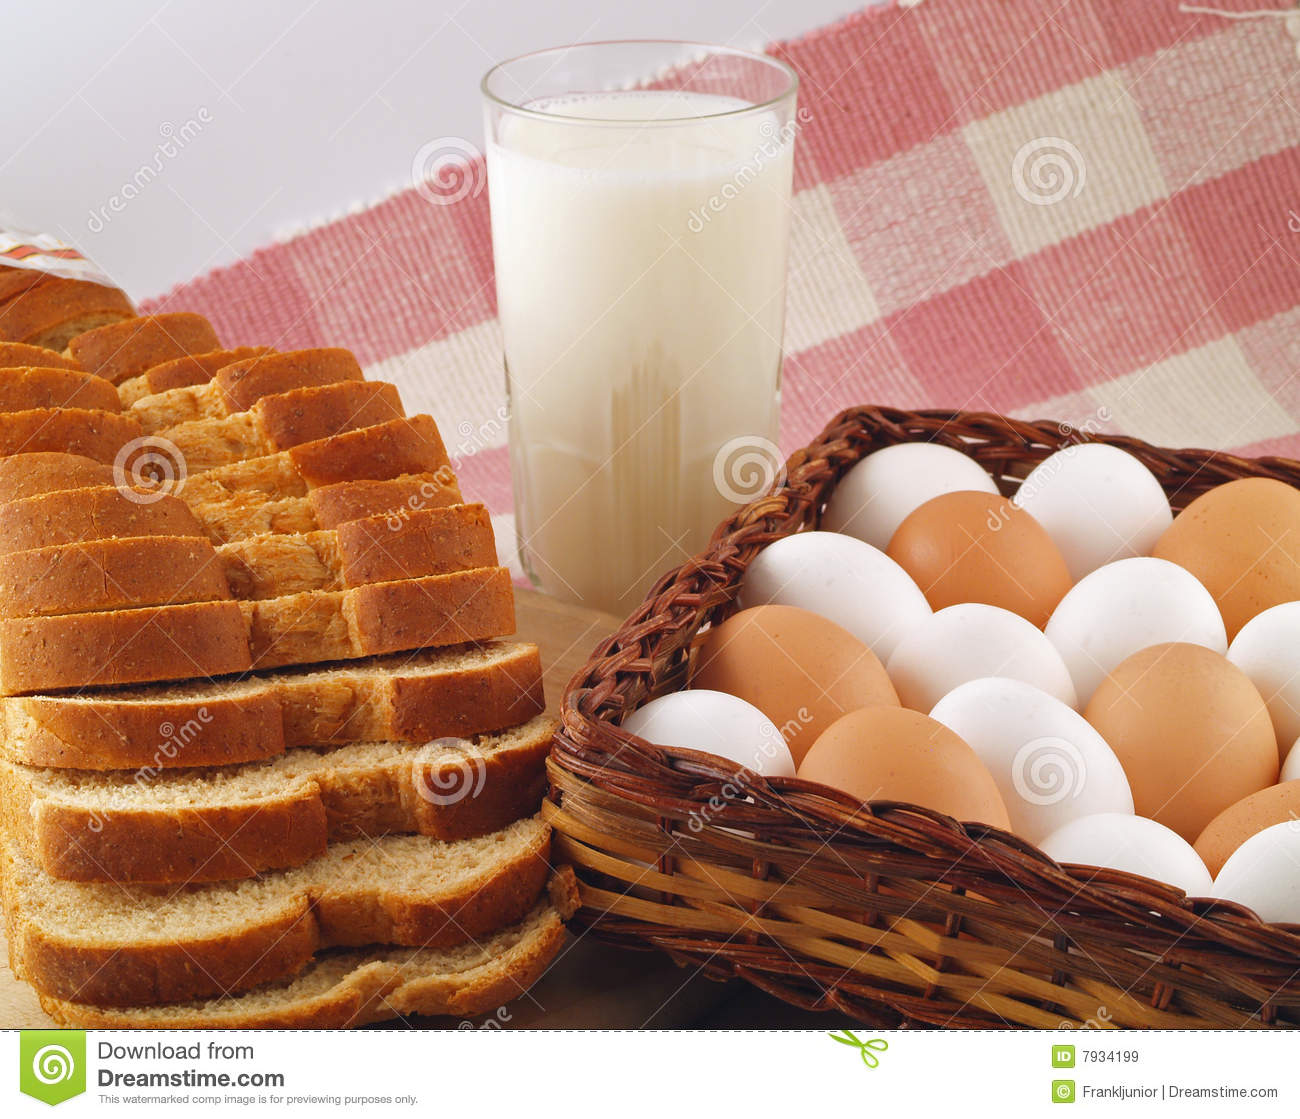 Bread in an egg with milk: a recipe with photos 63